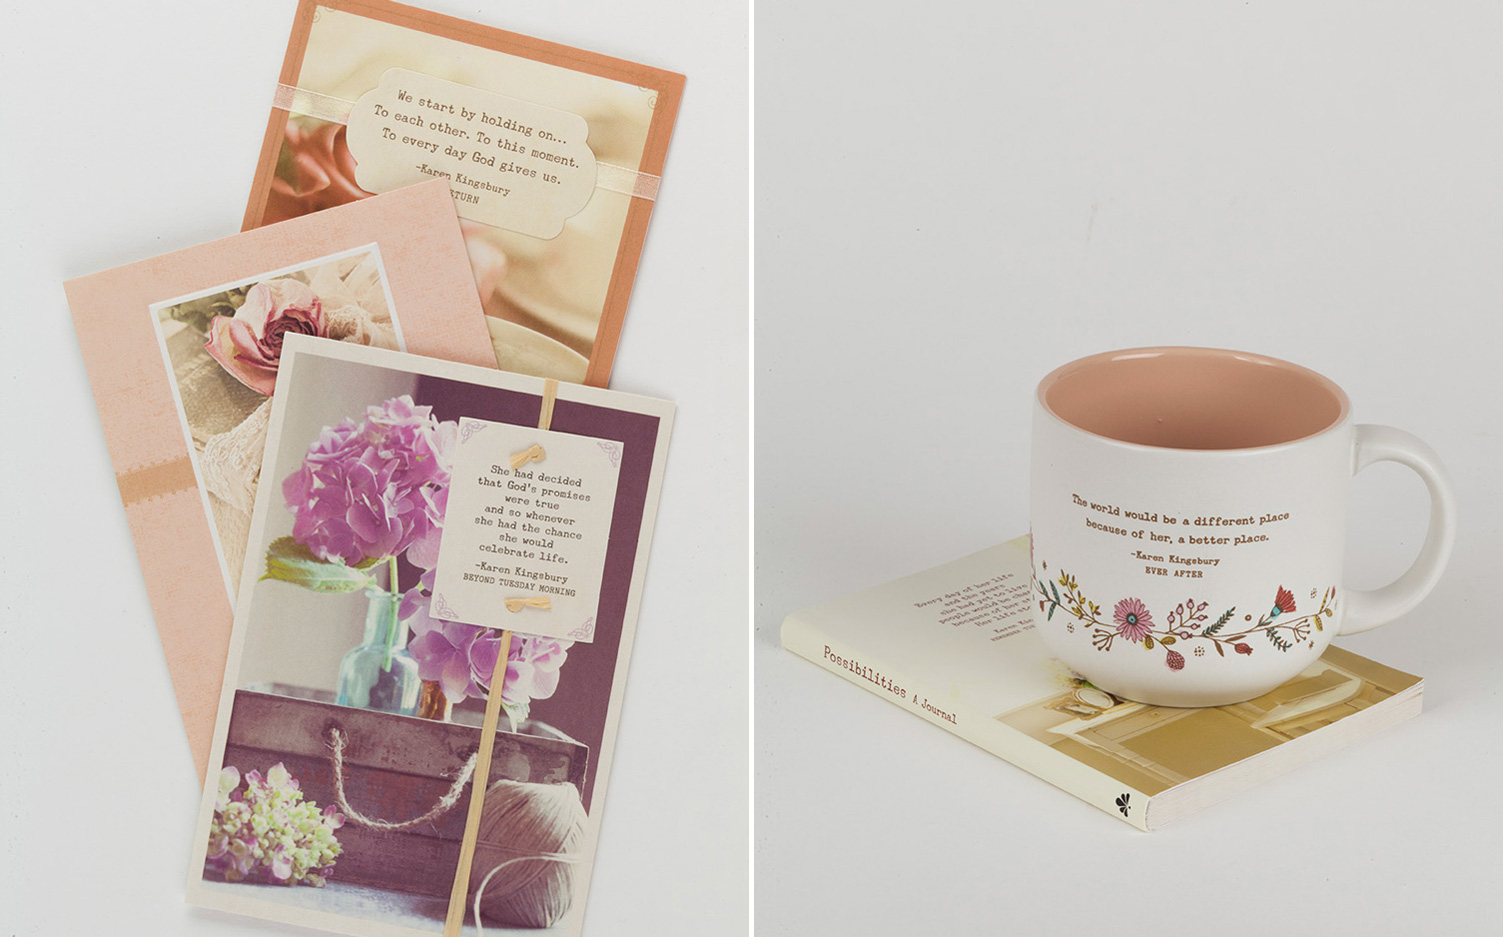 A picture of best-selling author Karen Kingsbury and daughter Kelsey Kupecky's greeting card and gift line, Possibilities